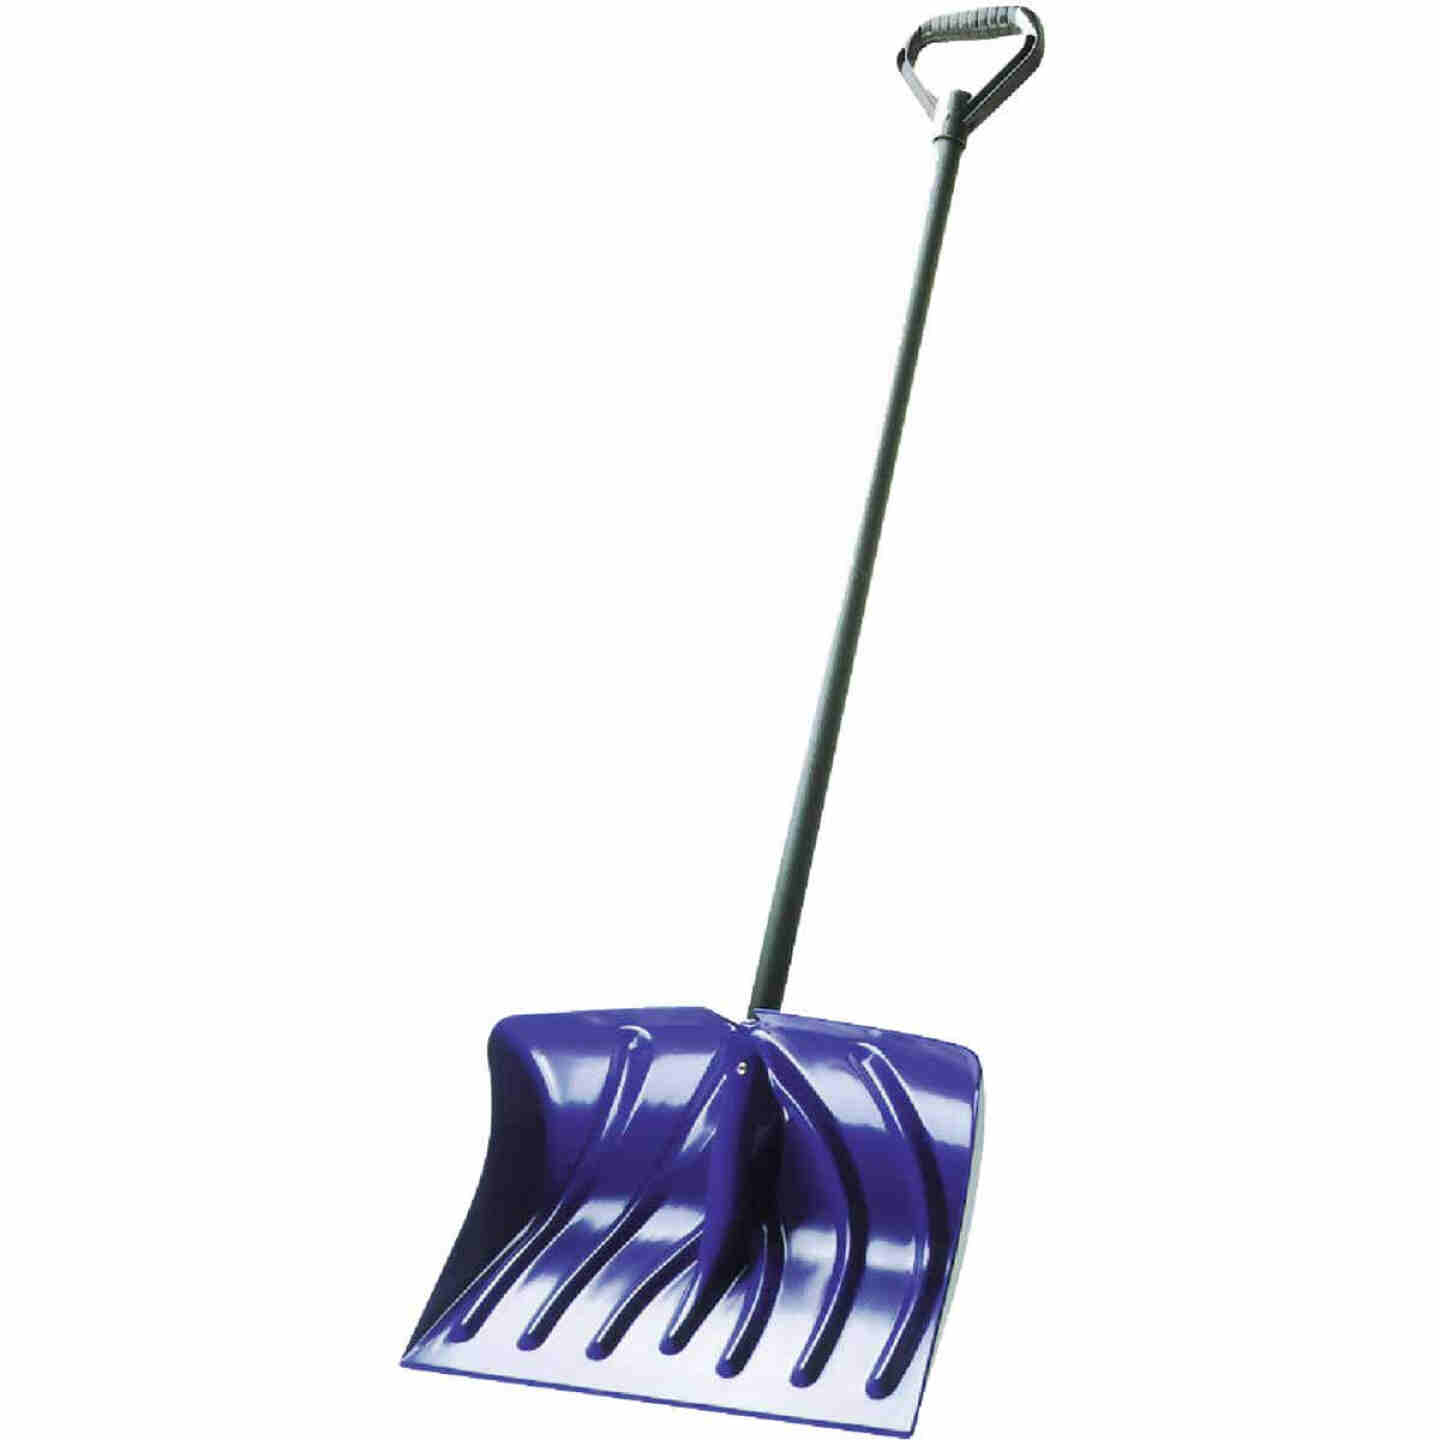 Suncast 18 In. Poly Snow Shovel with 39 In. Steel Handle Image 1